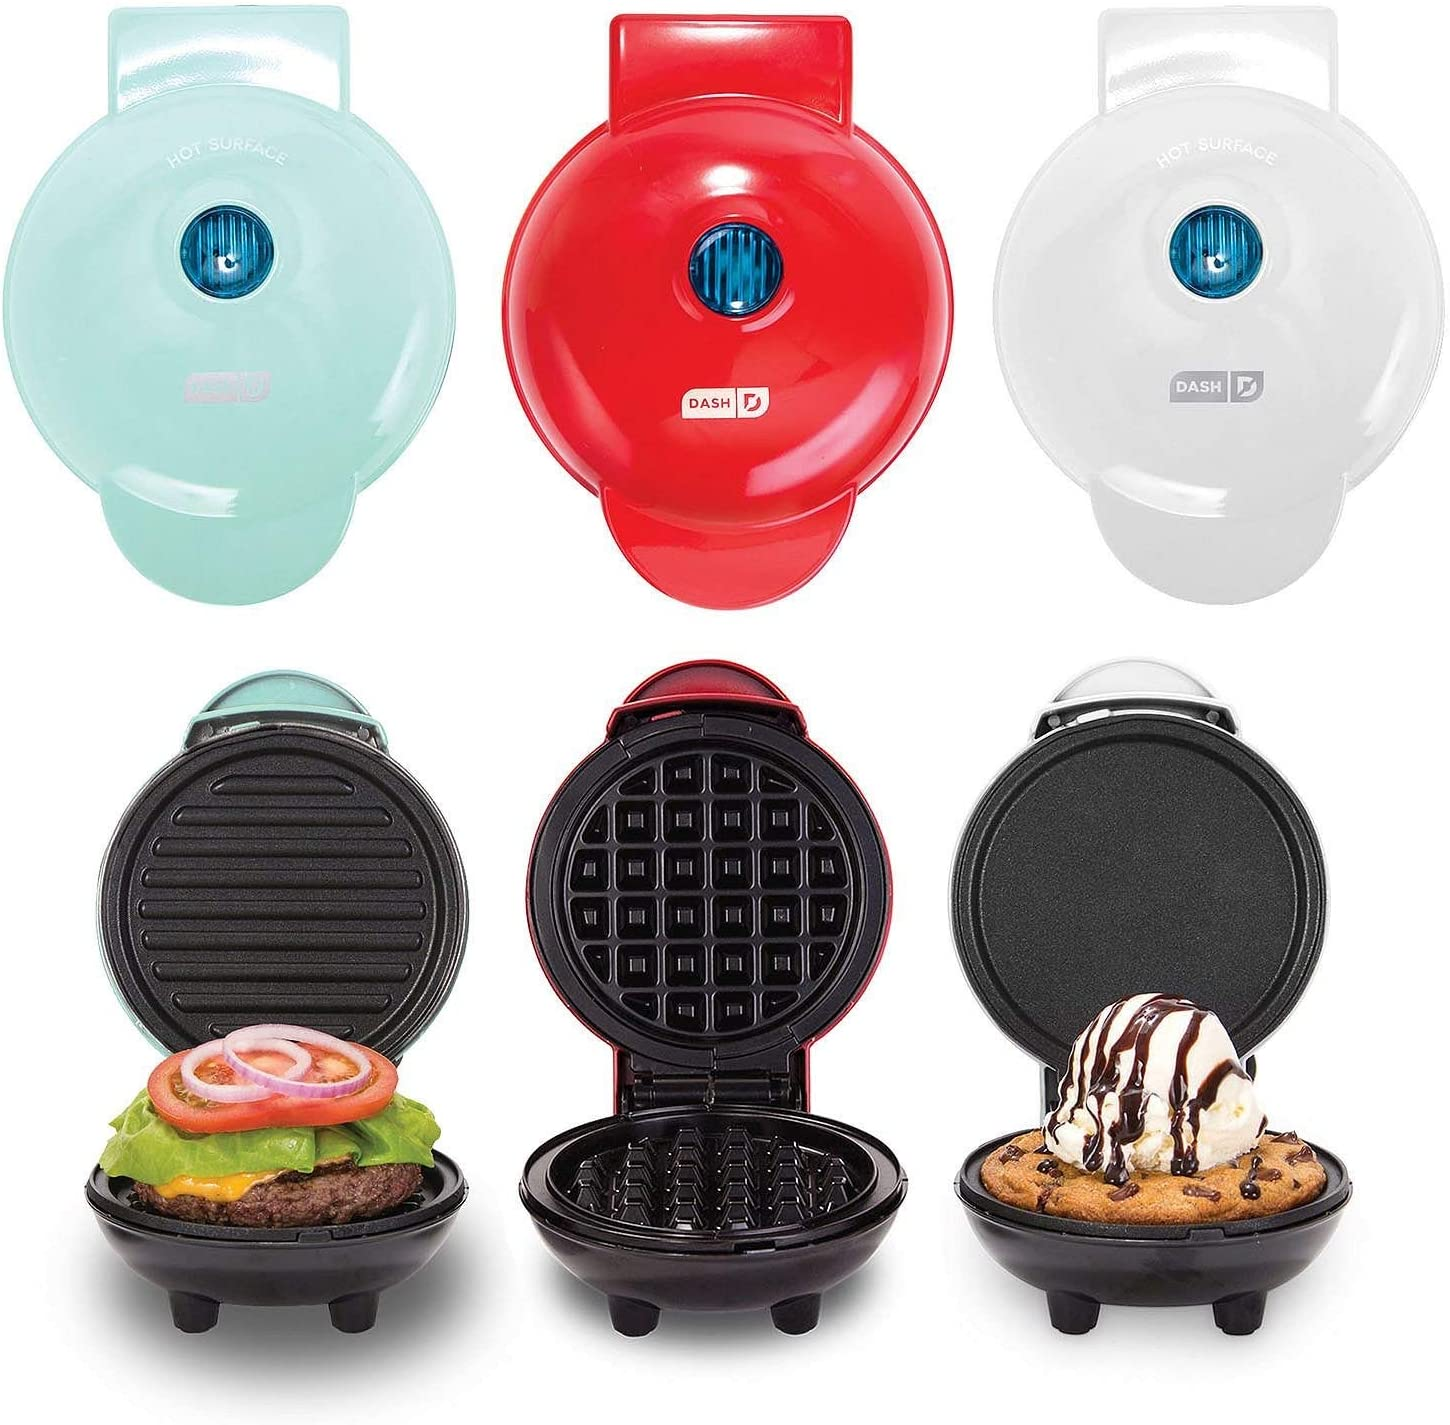 Dash Mini Maker Griddle, Waffle Maker and Grill Set Assorted Colors